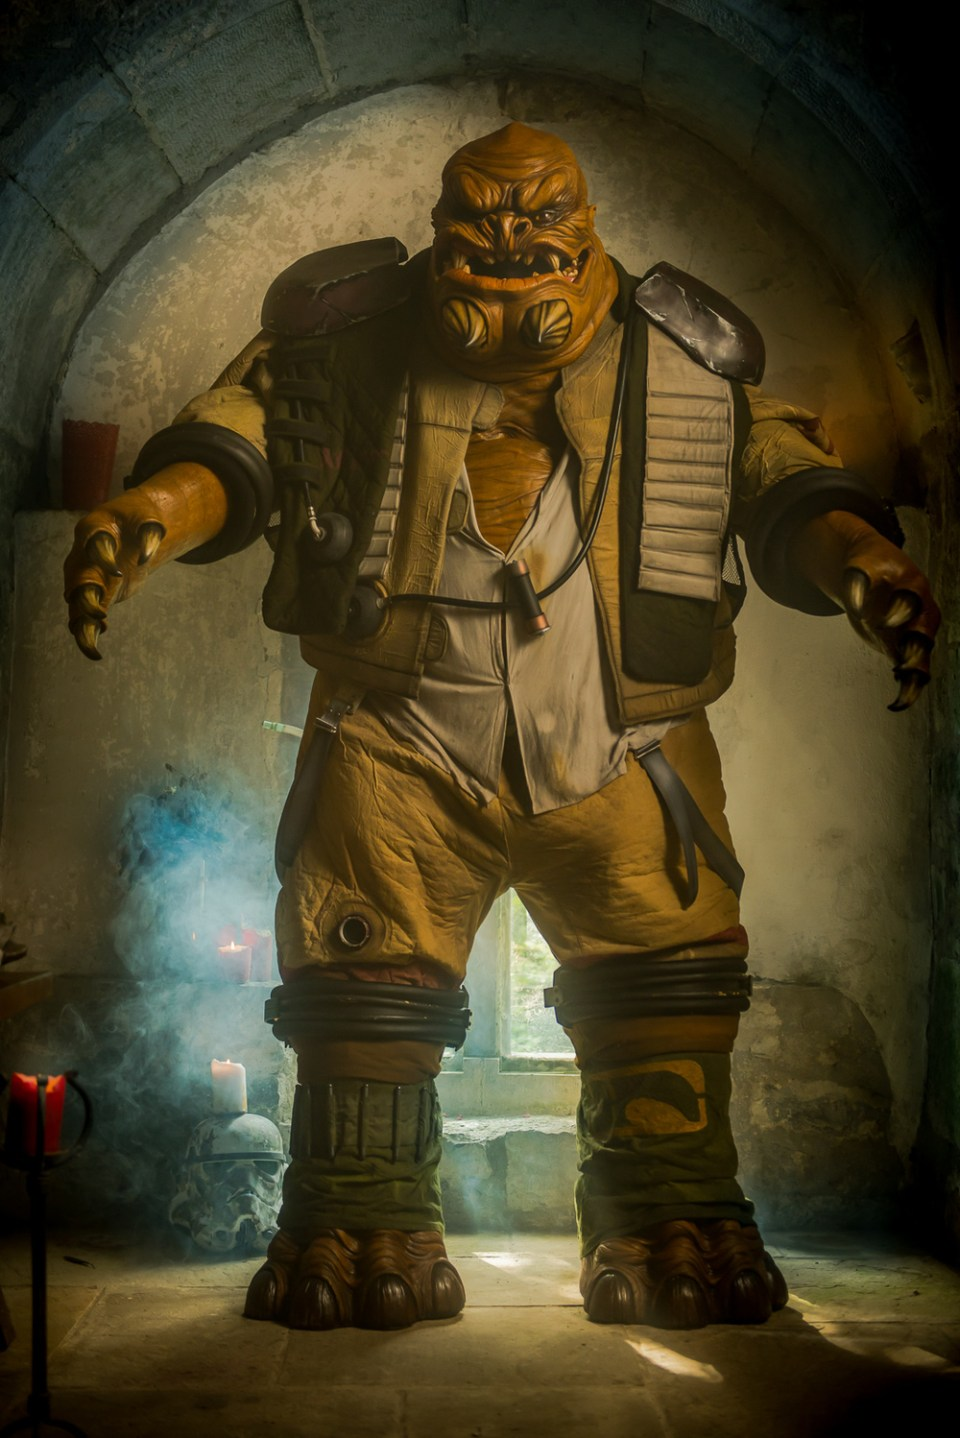 Grummgar from STAR WARS: THE FORCE AWAKENS